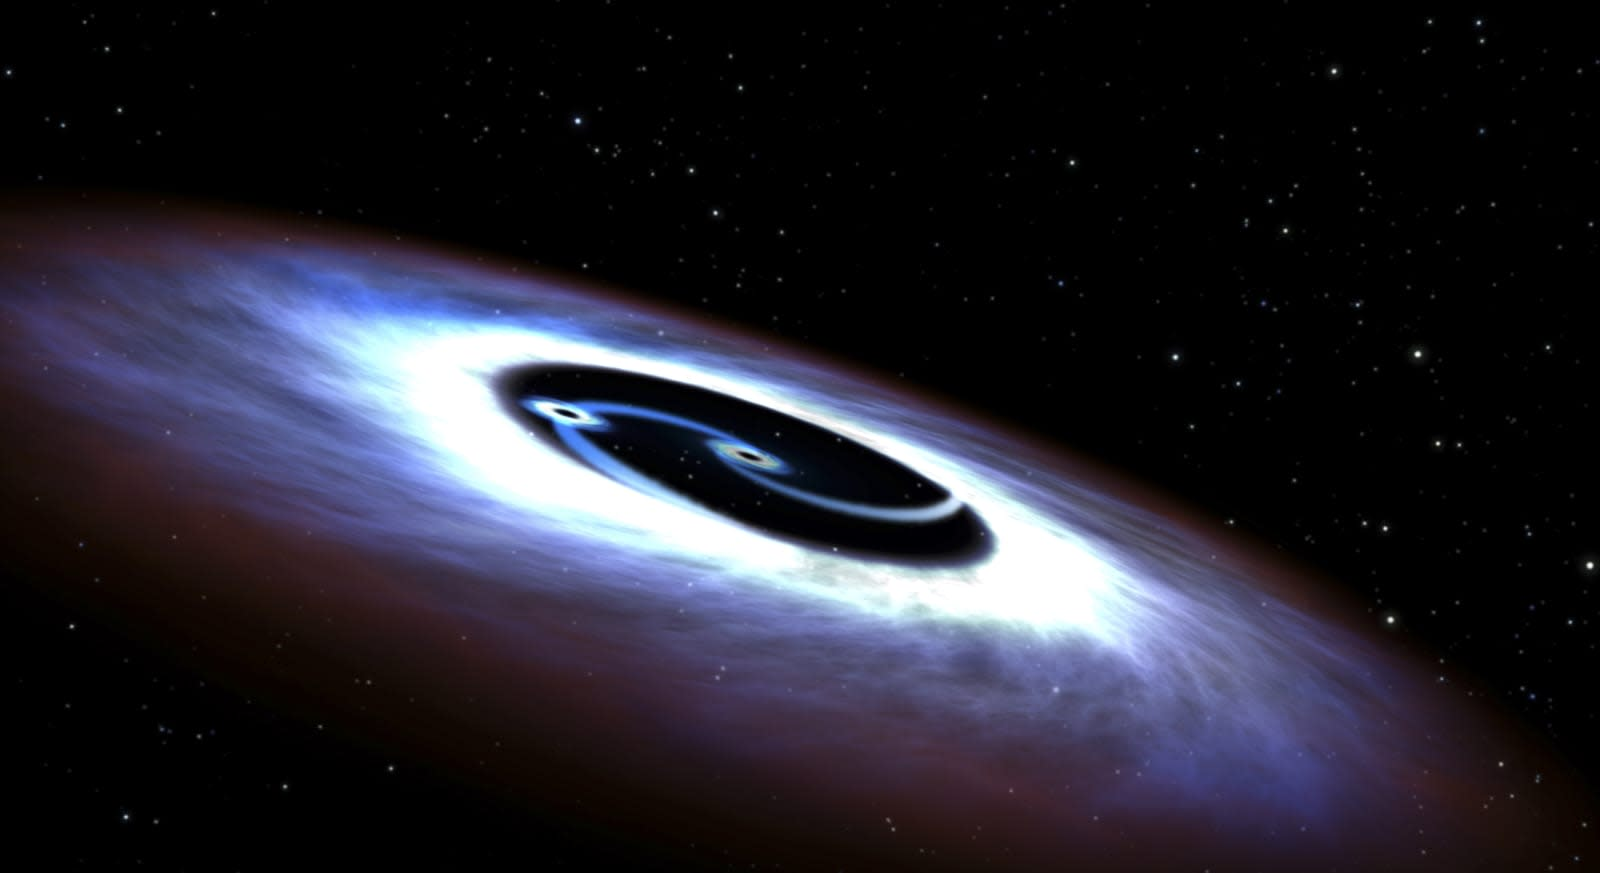 Nobel Prize for Physics awarded to gravitational wave scientists